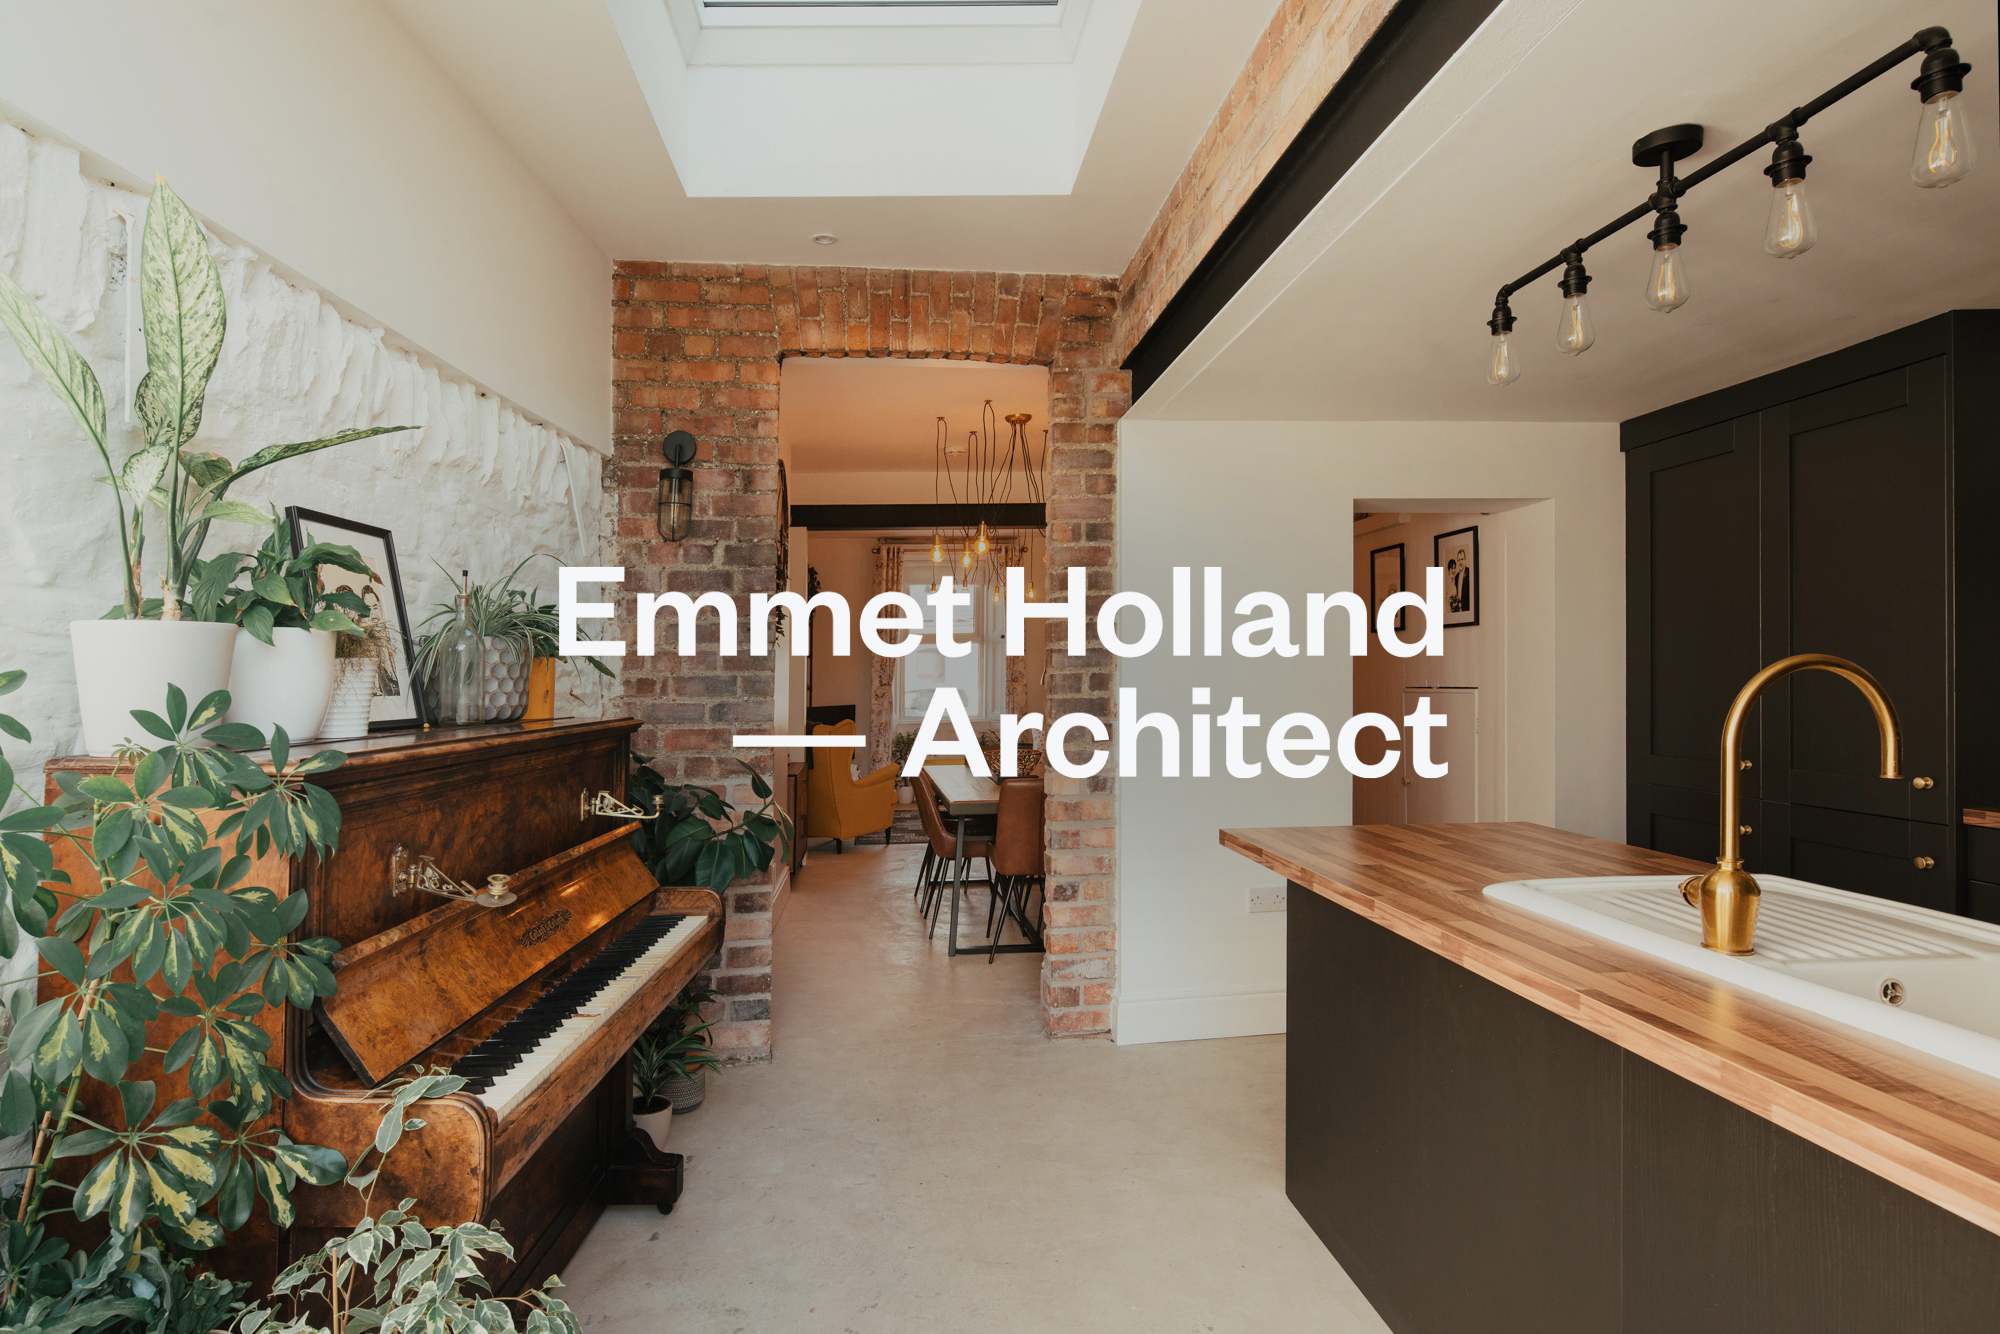 Cover image: Emmet Holland Architect